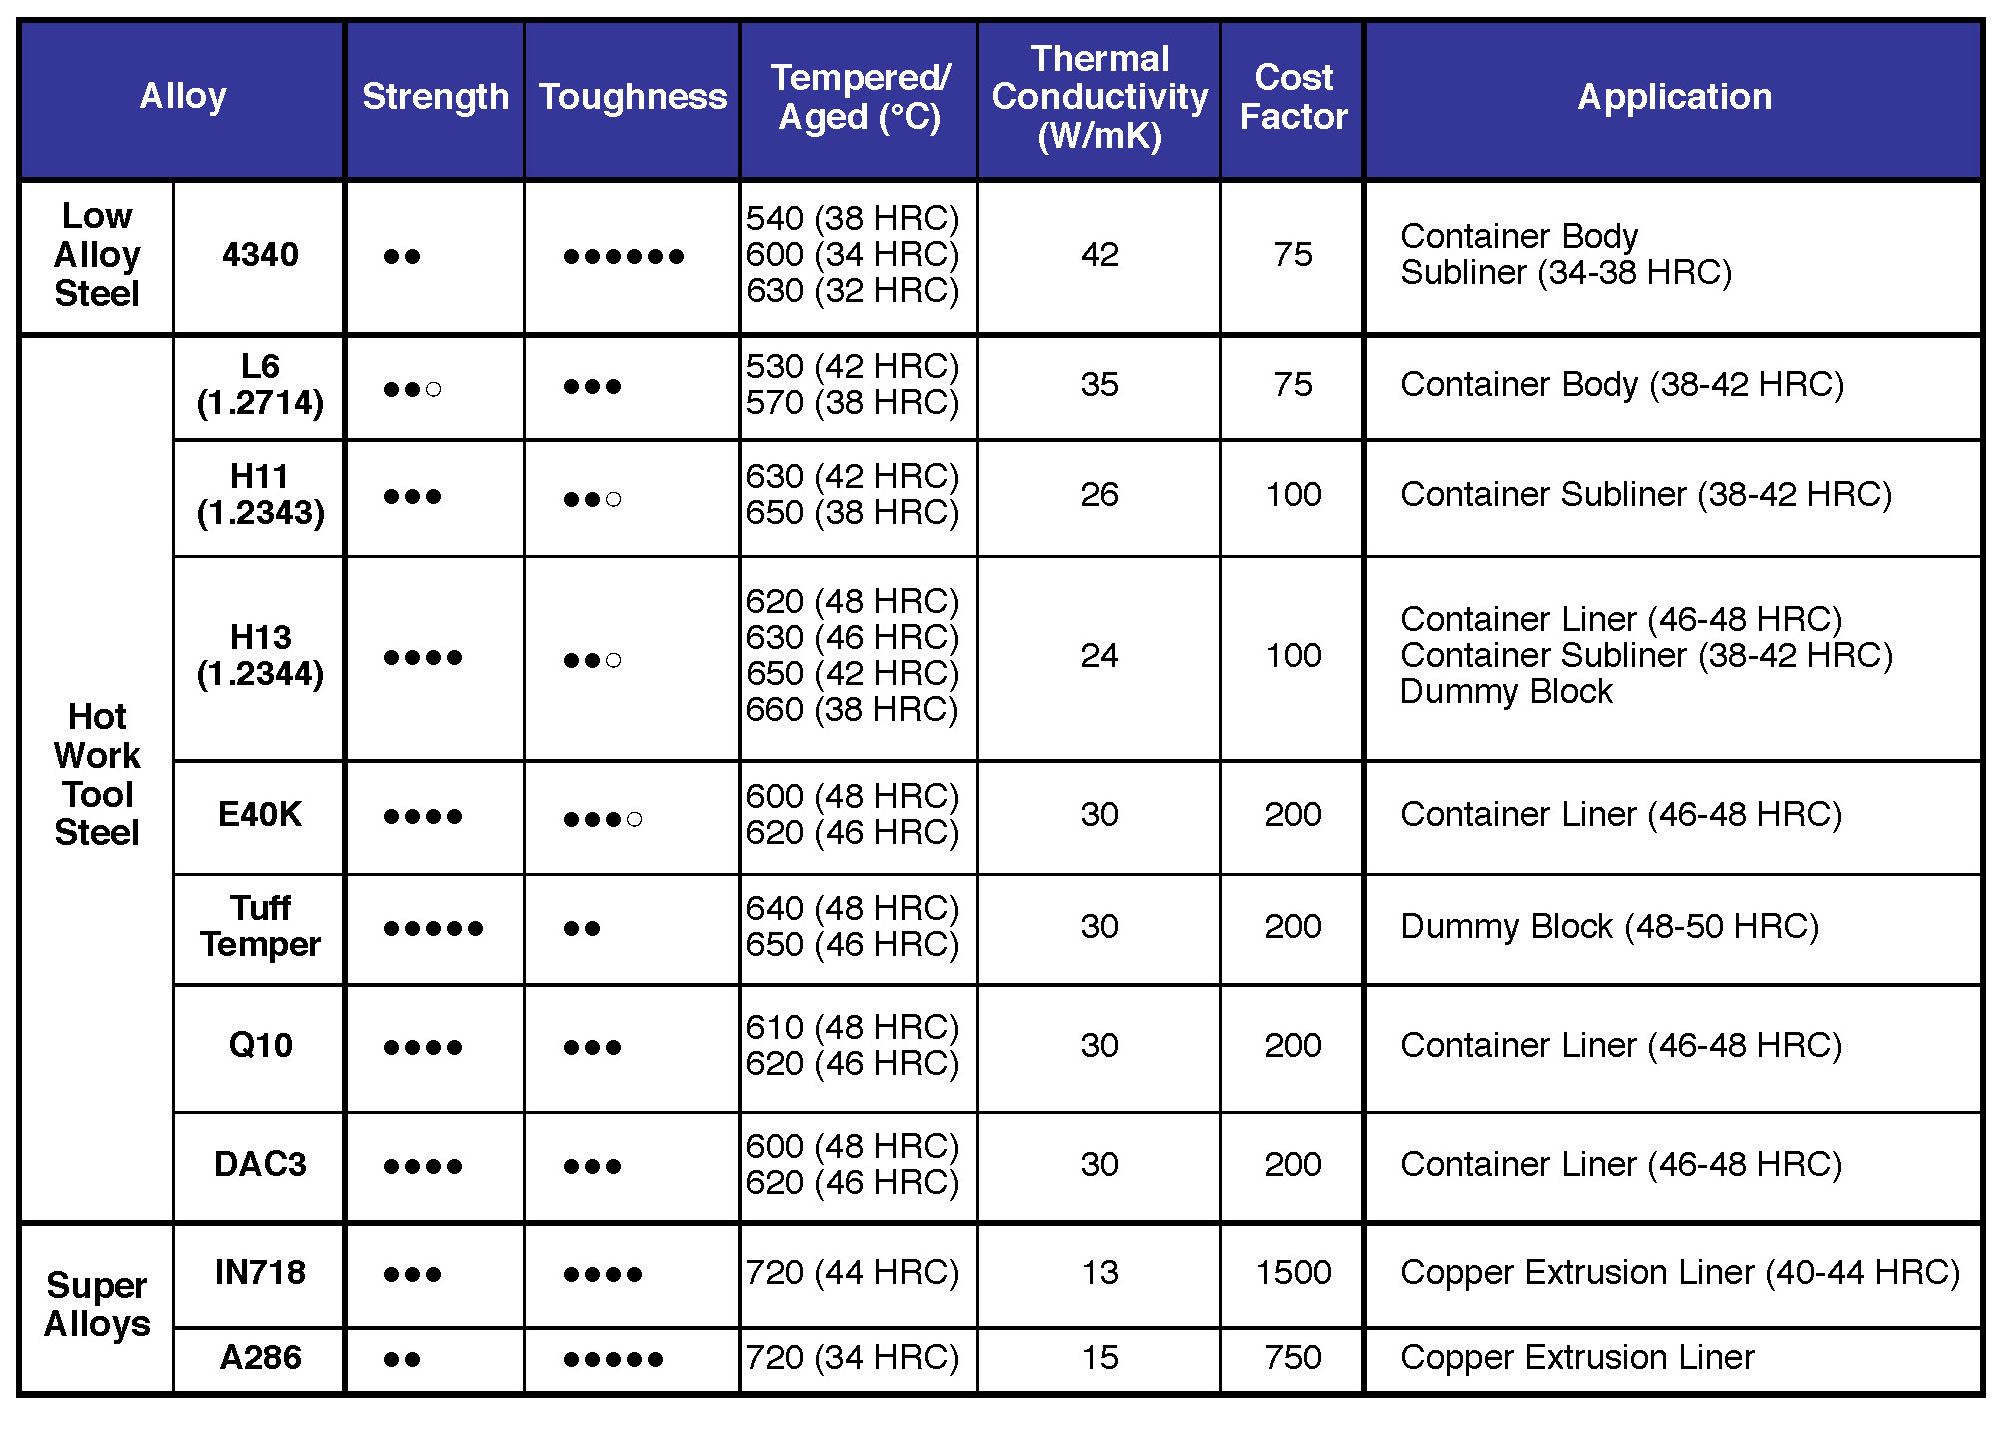 Table I. Key properties for steel materials used in extrusion tooling.